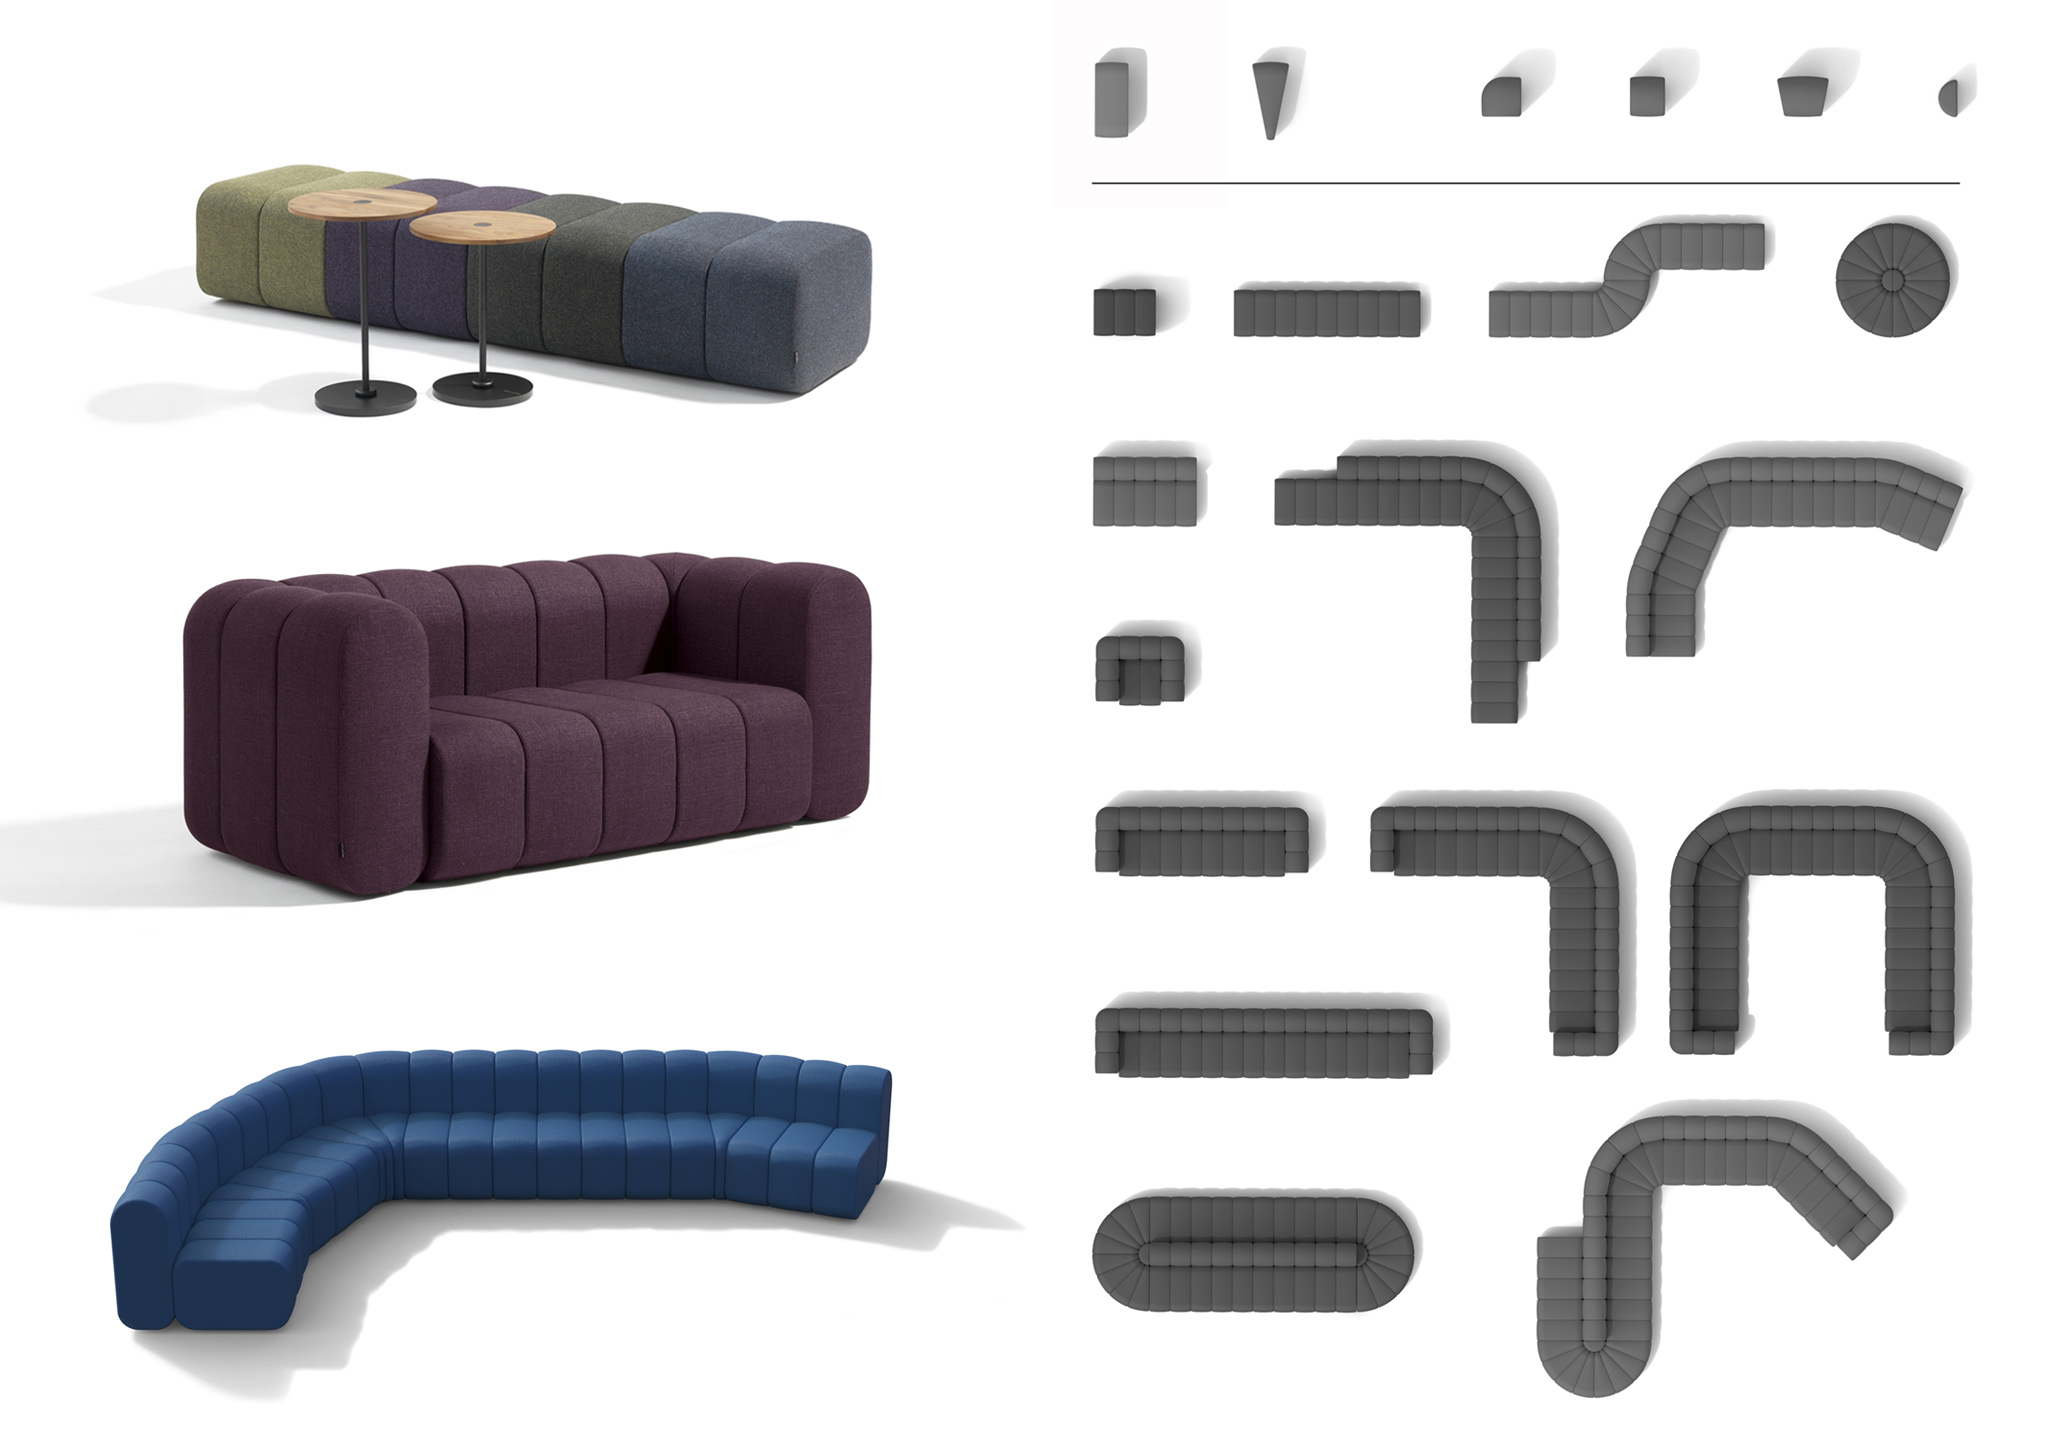 bla-station-bob-modular-sofa-system-design-contract